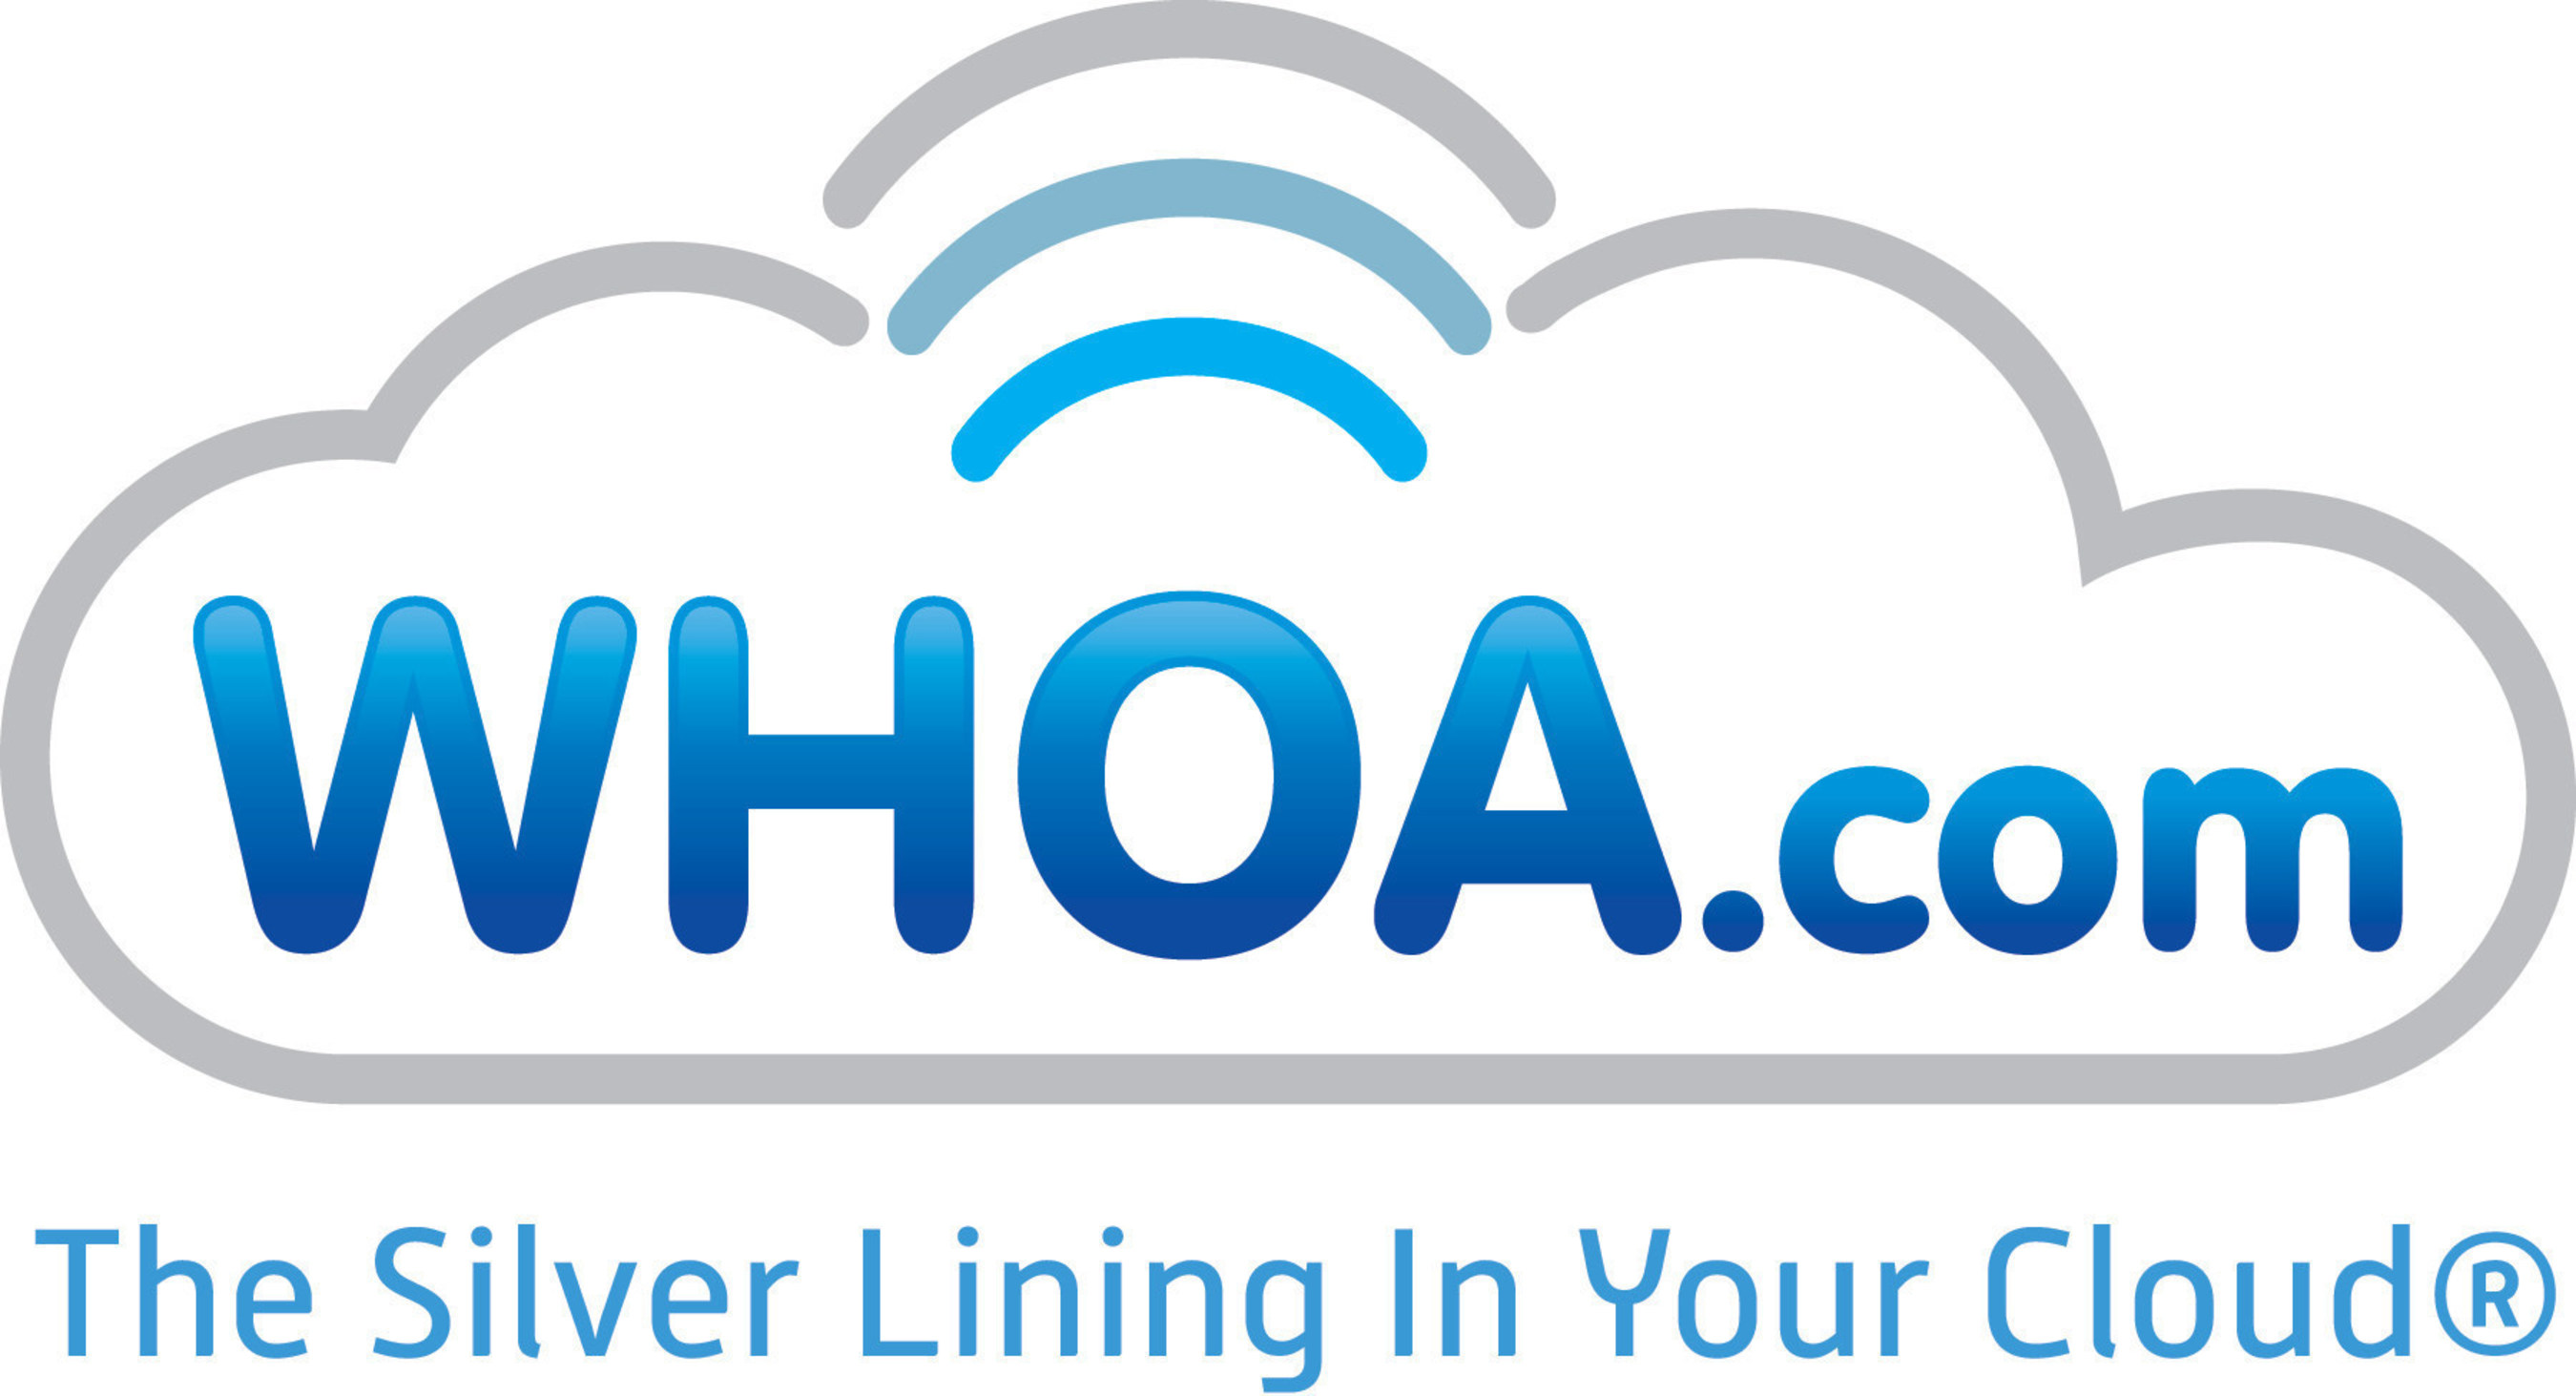 WHOA.com Announces CompliancePoint Partnership to Deliver PCI and HIPAA Secure Cloud for Business